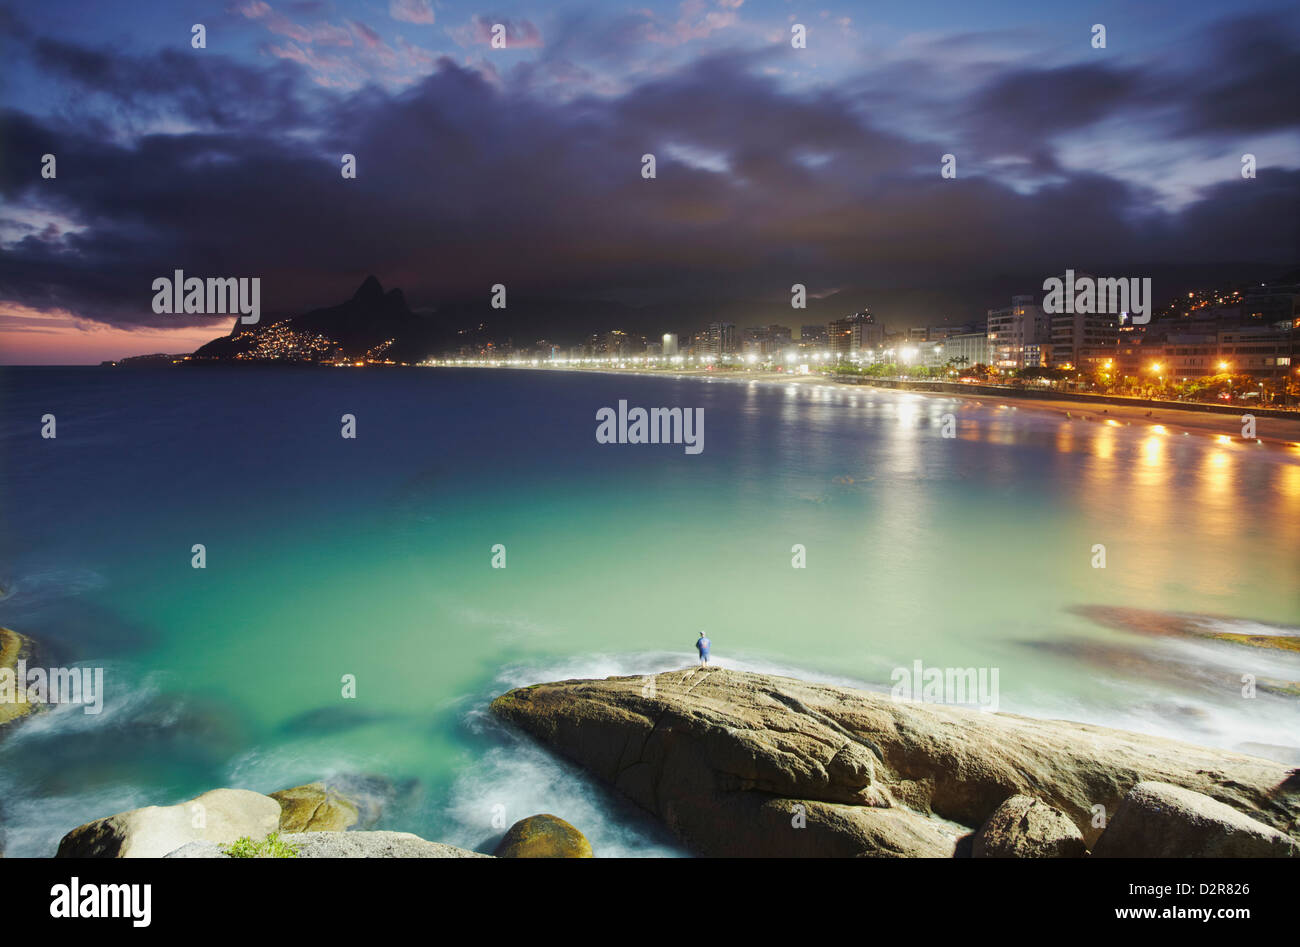 Ipanema beach and Ponta do Aproador at sunset, Rio de Janeiro, Brazil, South America - Stock Image